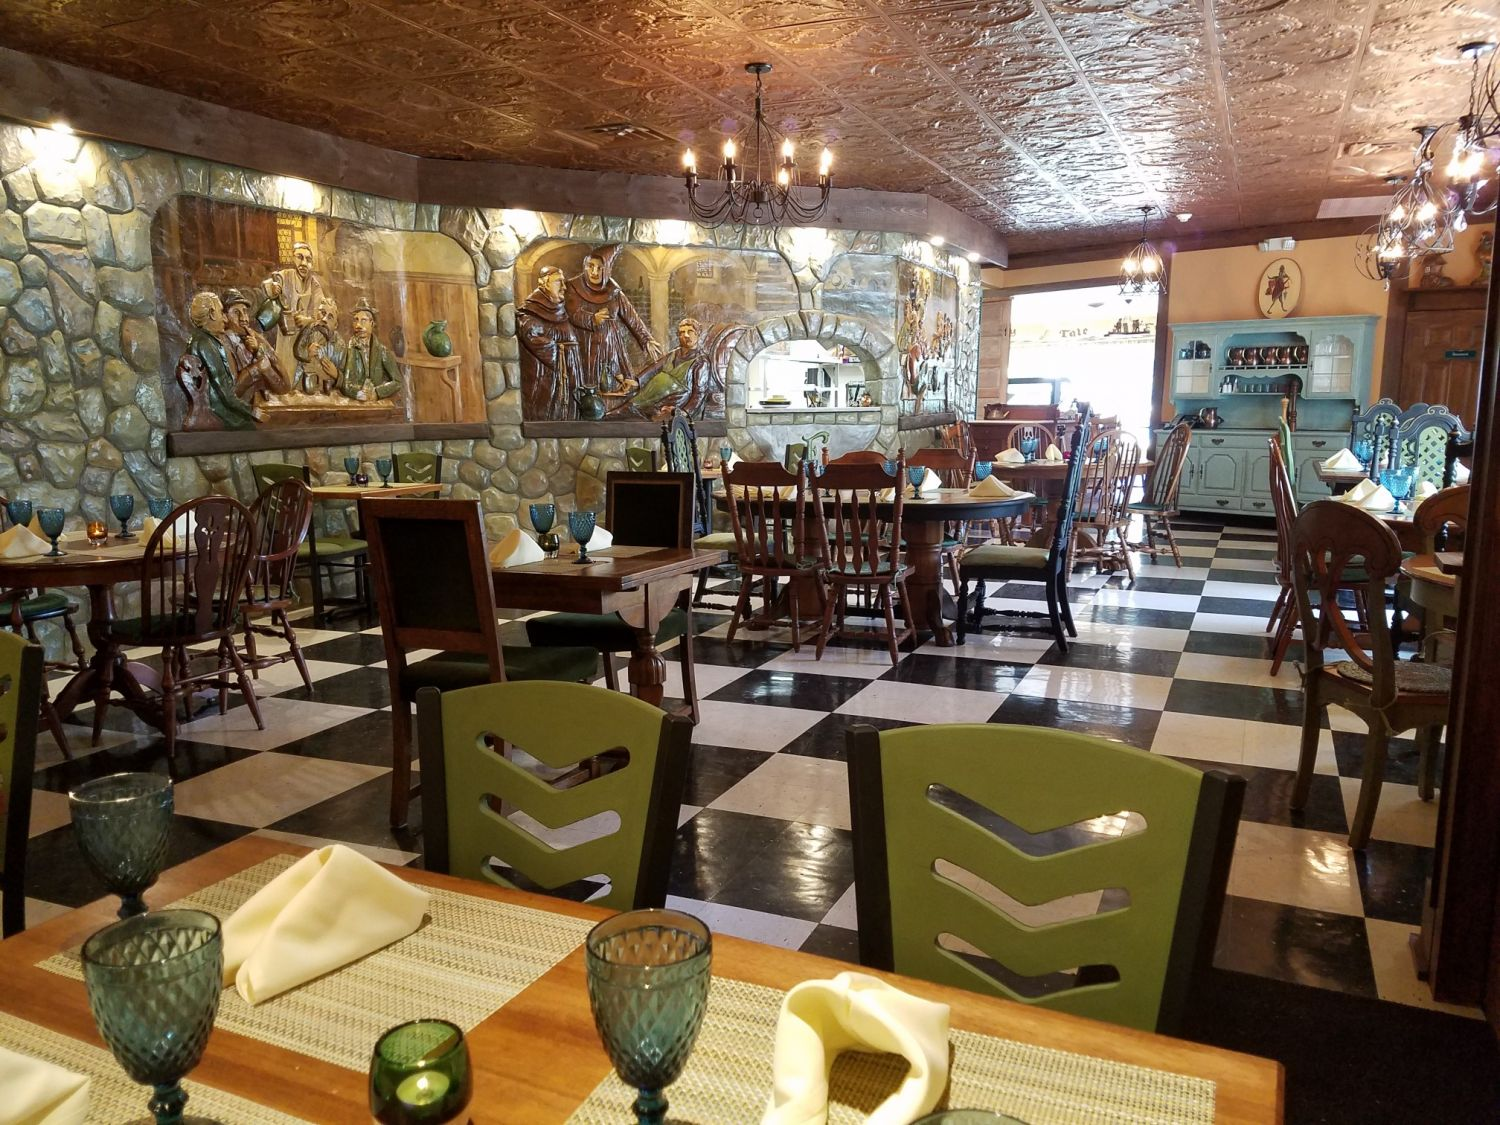 fables-restaurant-dining-room-977